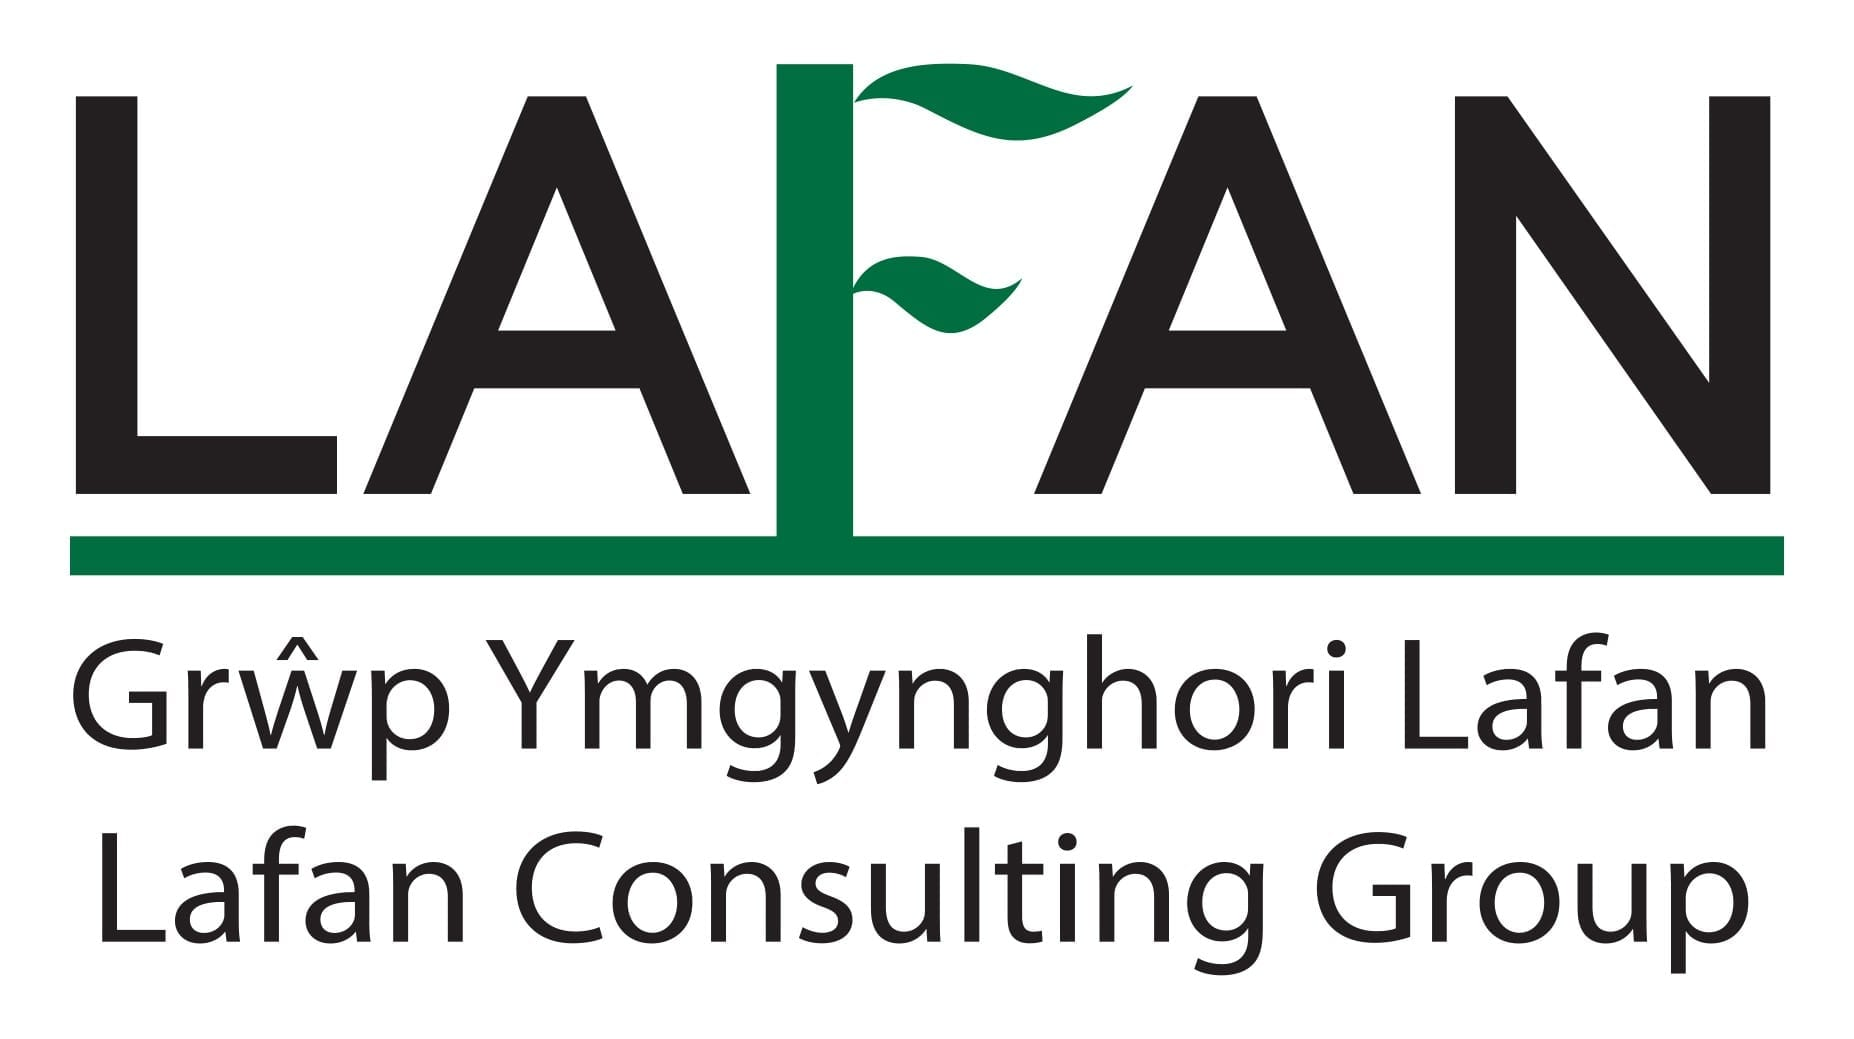 Lafan Consulting